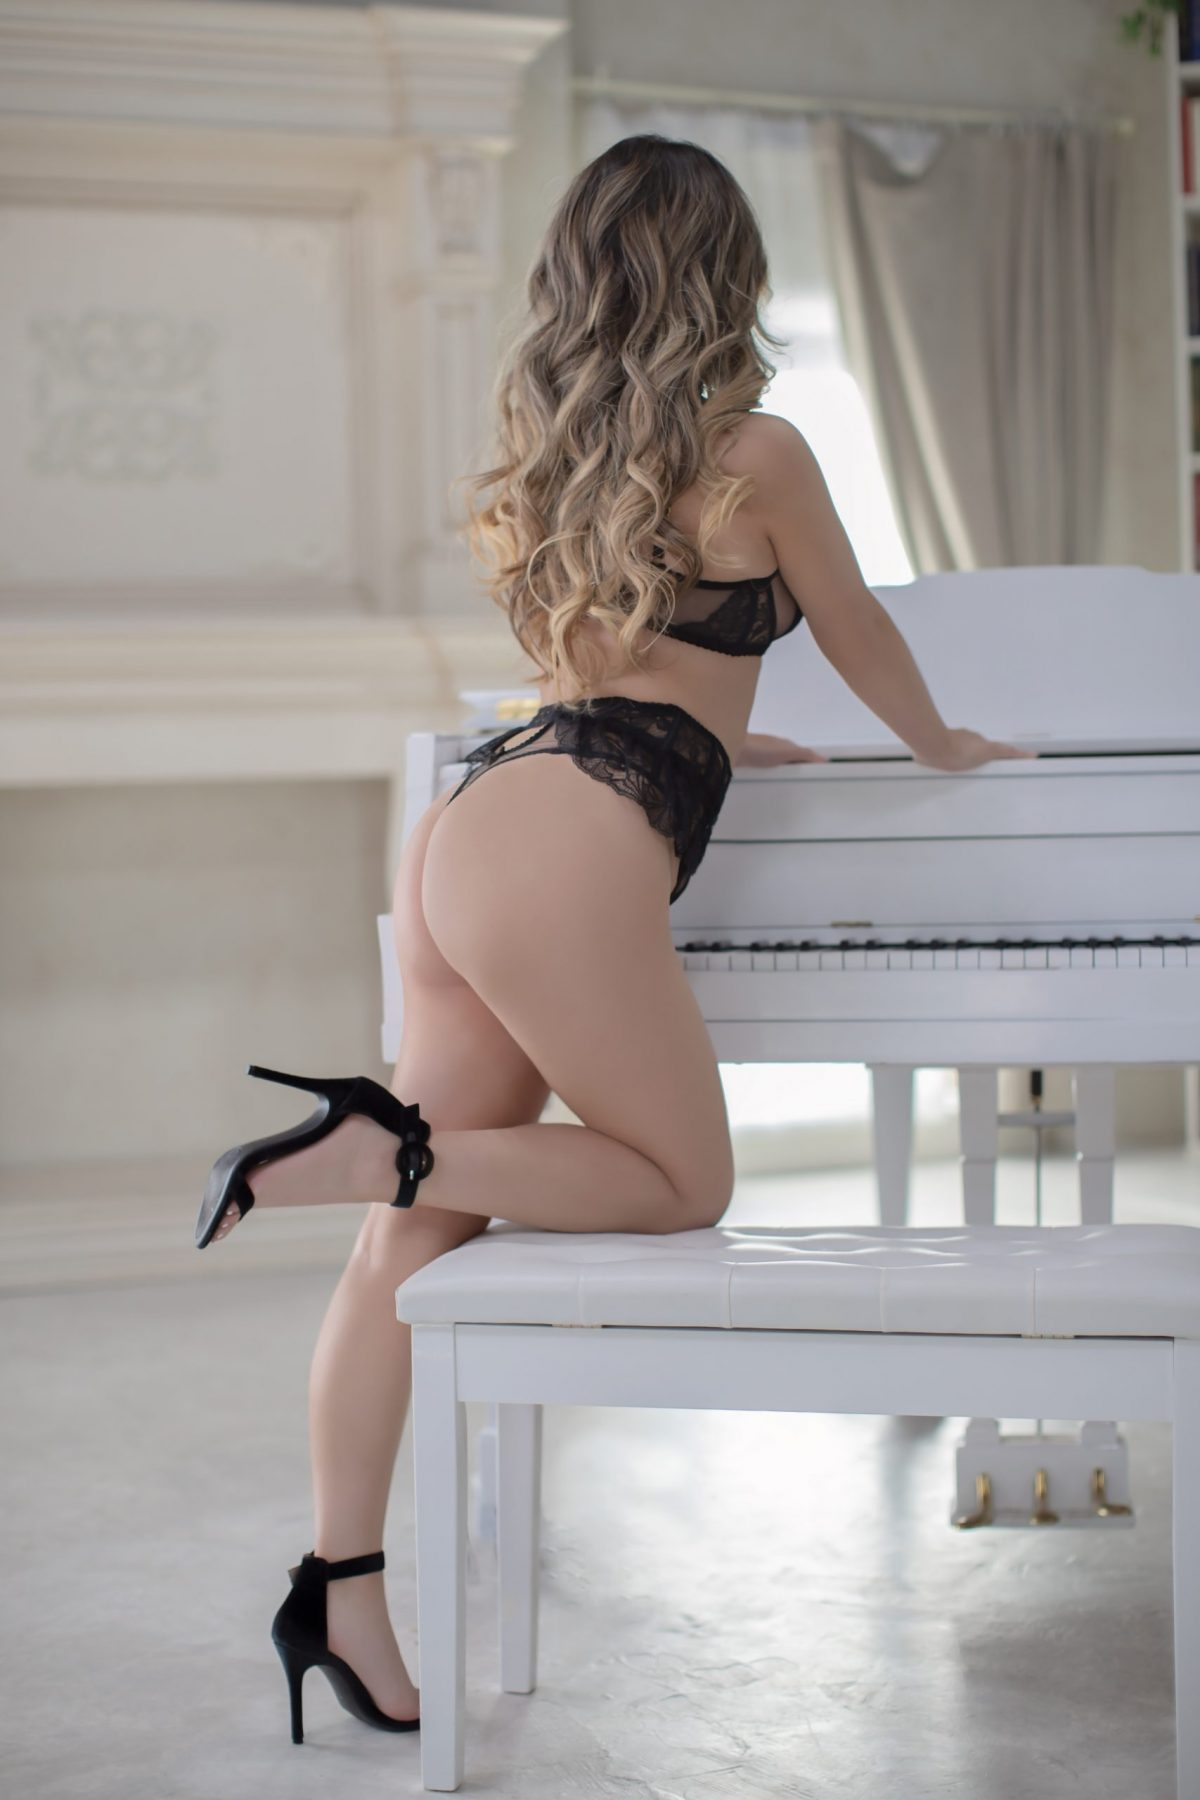 Toronto escorts companion upscale Aria Interests Duo Disability-friendly Non-smoking Age Young Figure Slender Petite Breasts Natural Hair Blonde Ethnicity Asian Tattoos Arrival Returning